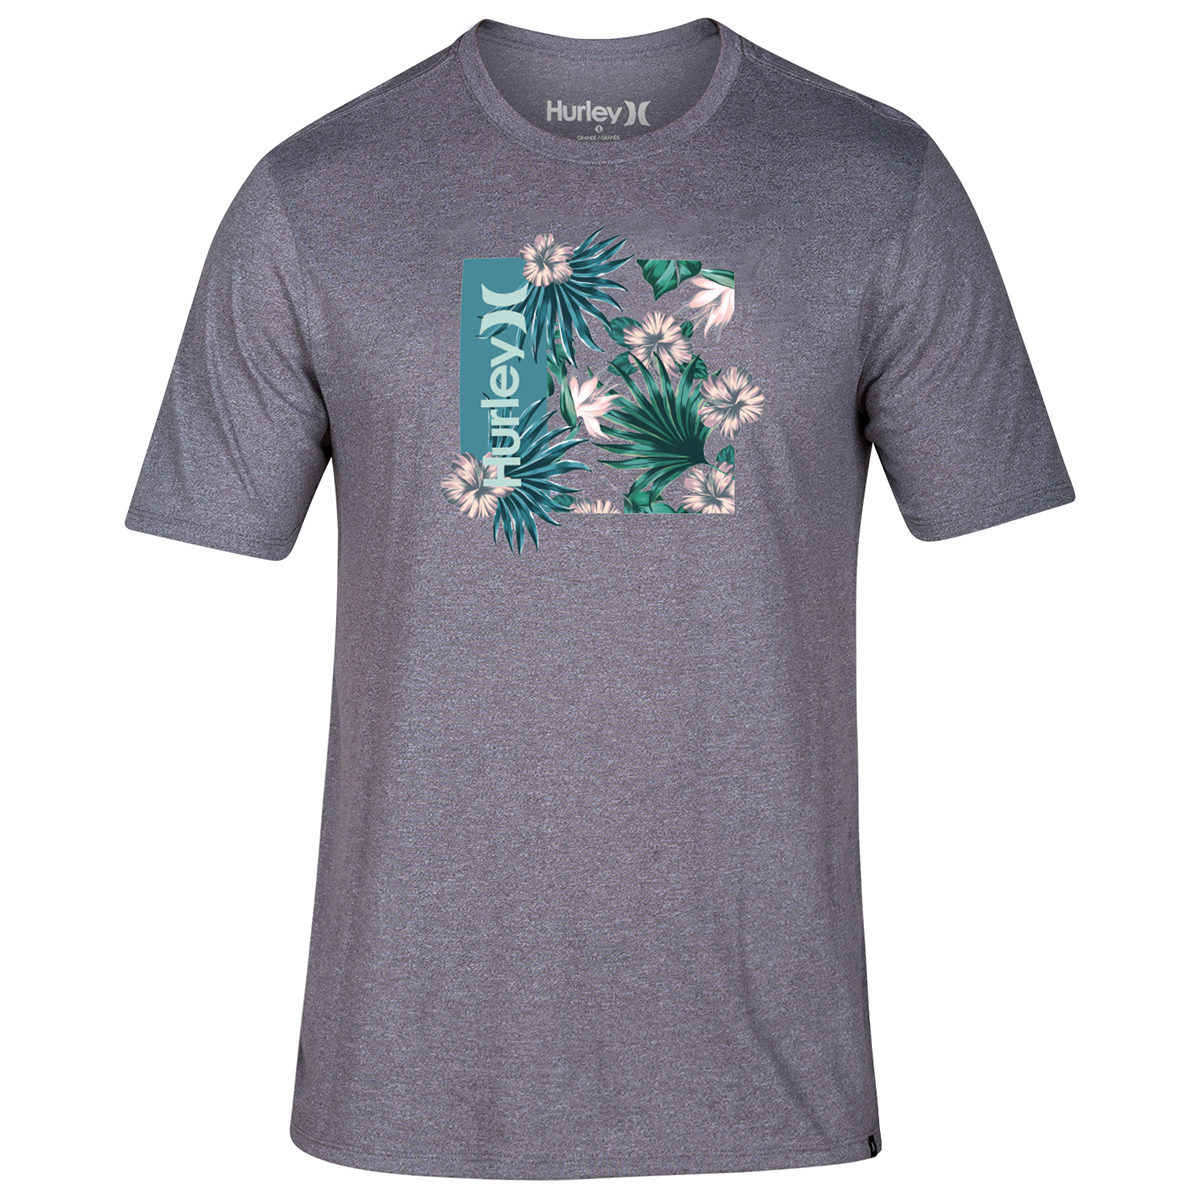 Hurley Men's Short-Sleeve One & Only Floral Box Tee - Black, S